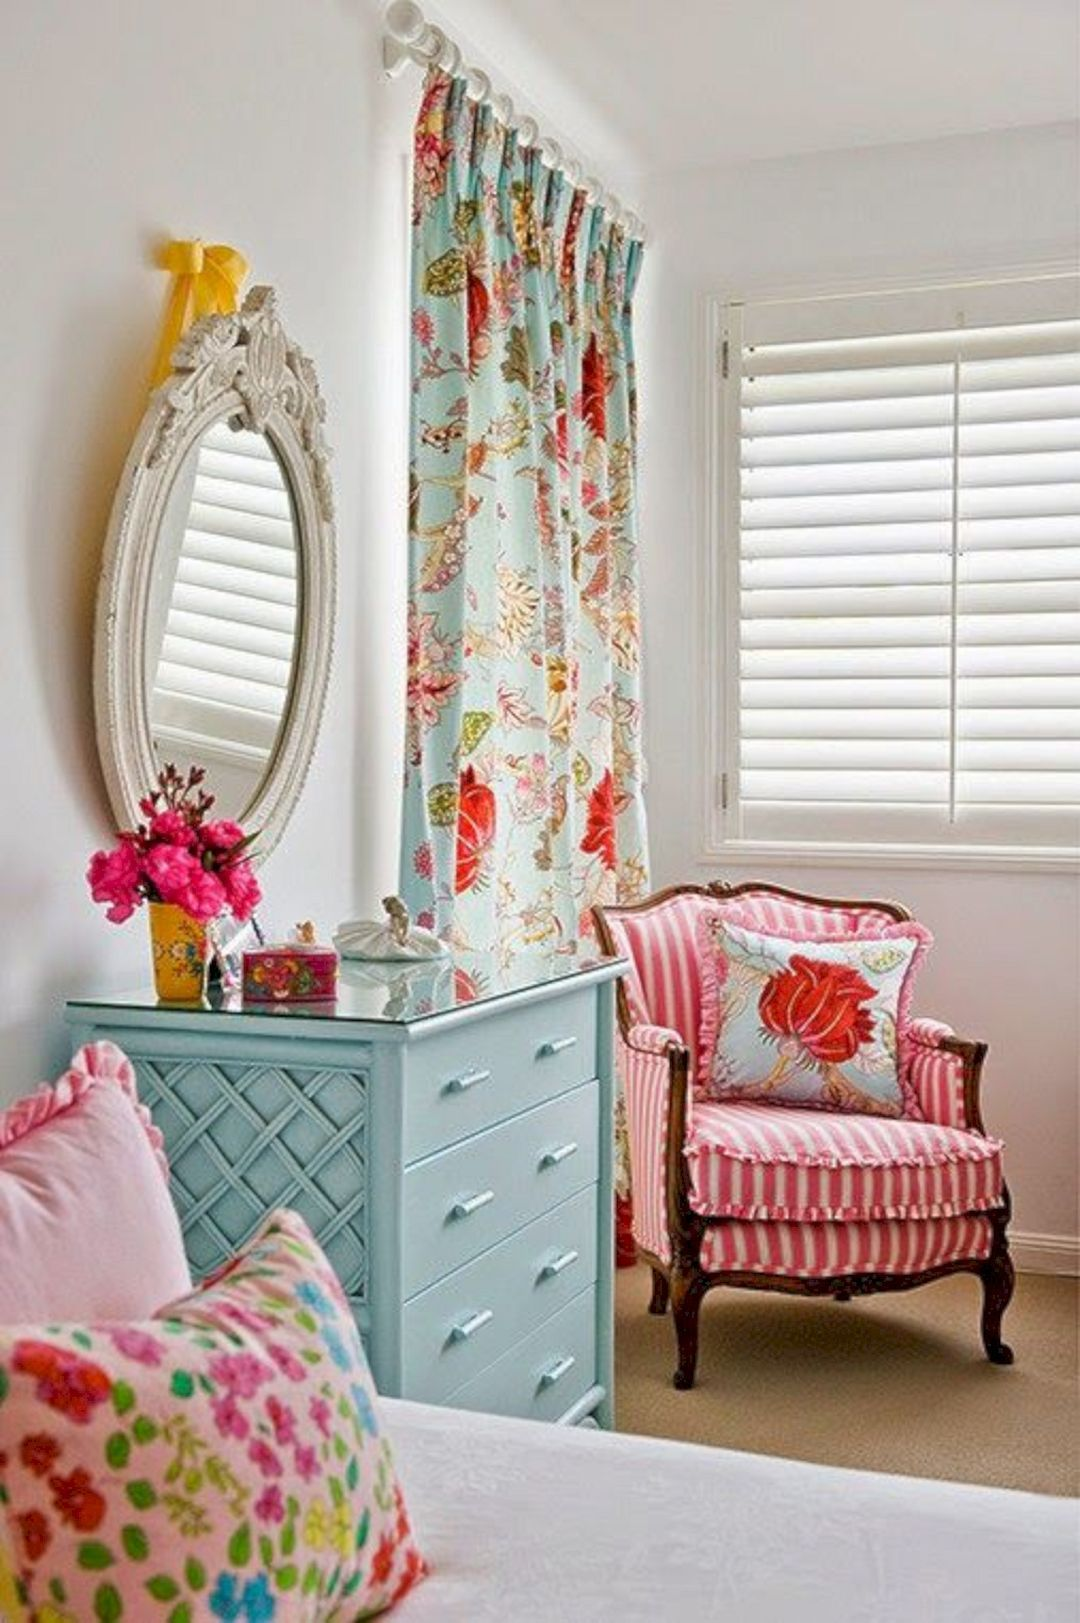 17 French Country Room Decoration Ideas Room Decor Bedroom Decor Room Inspiration